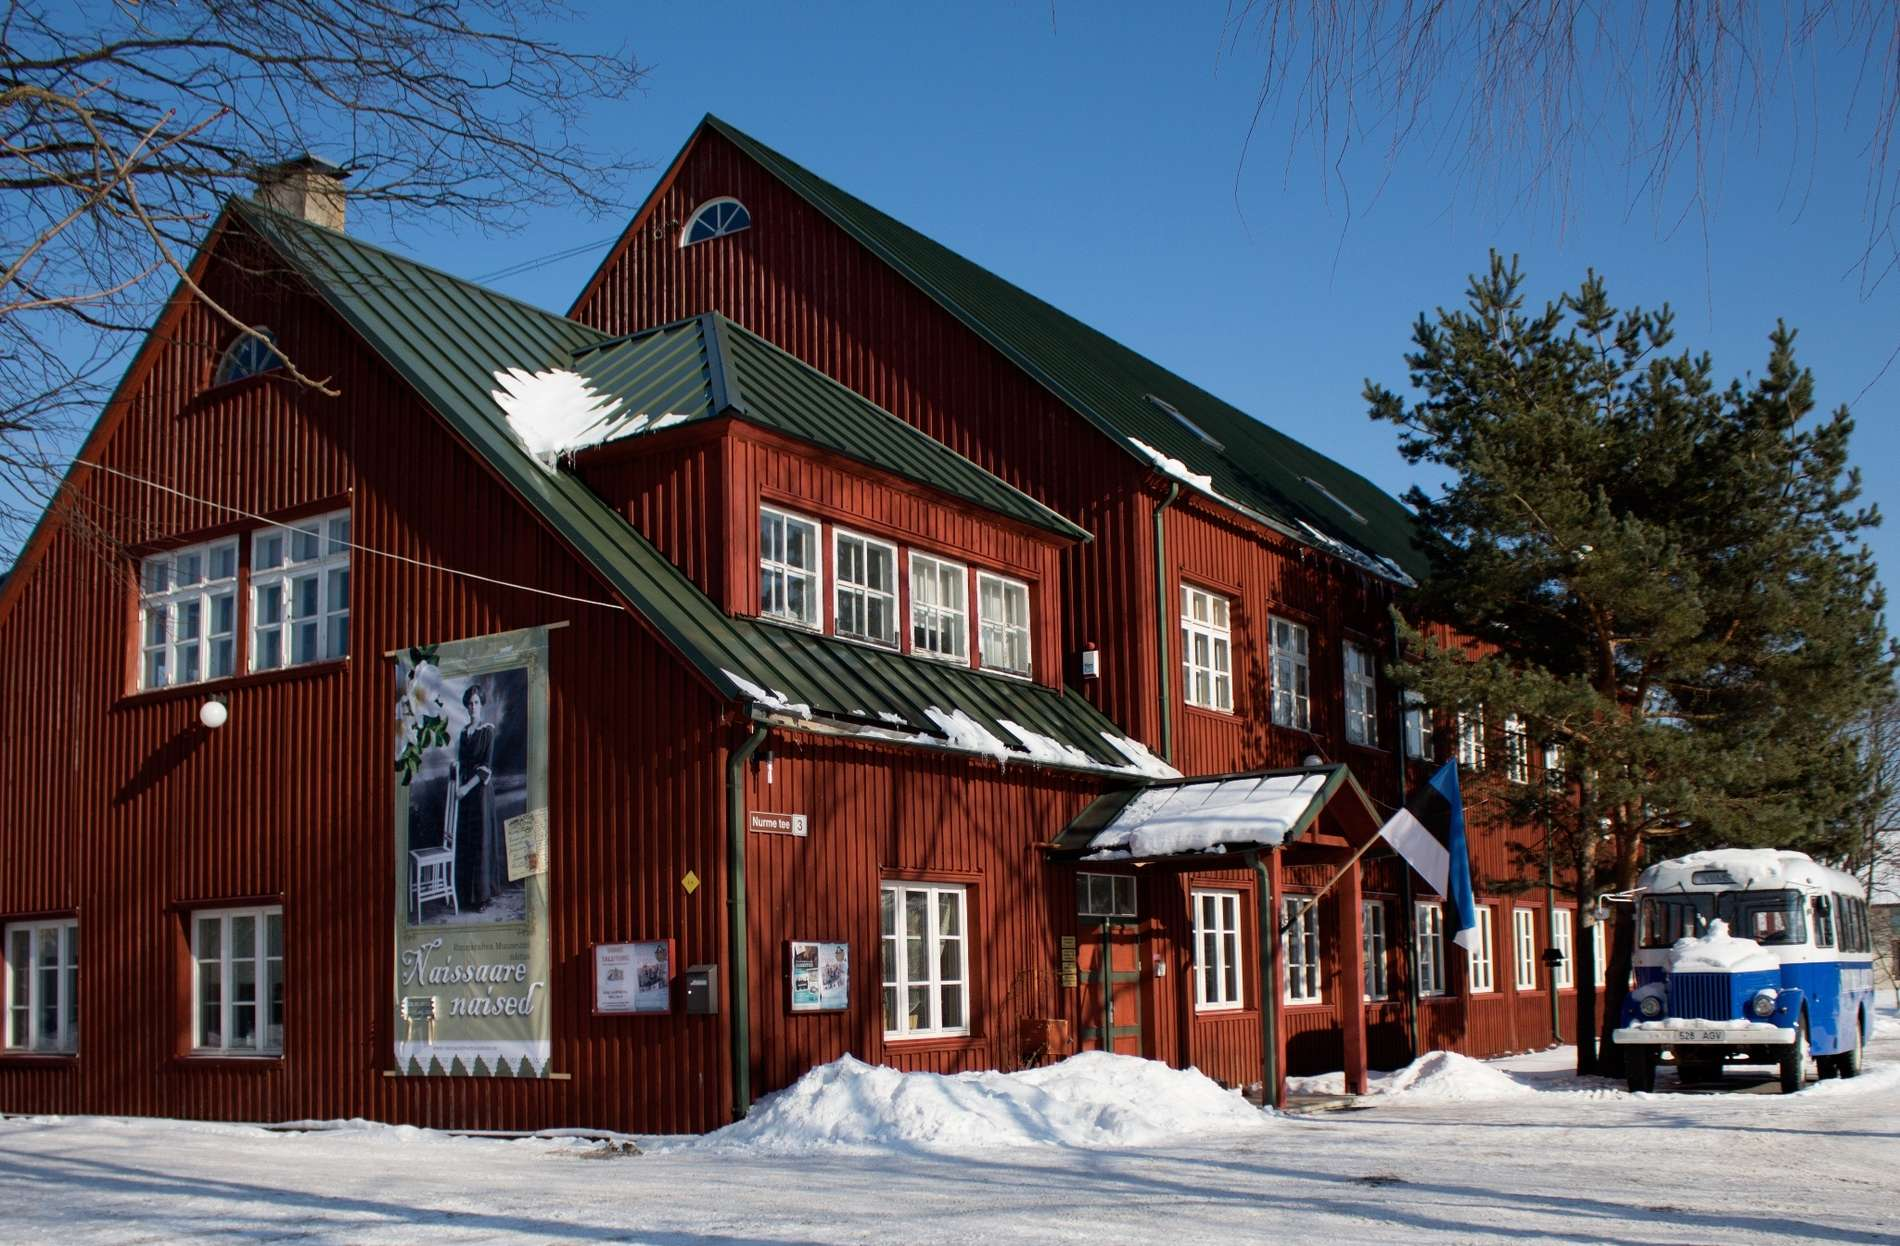 External view of the Museum of Coastal Folk in Viimsi, Estonia.